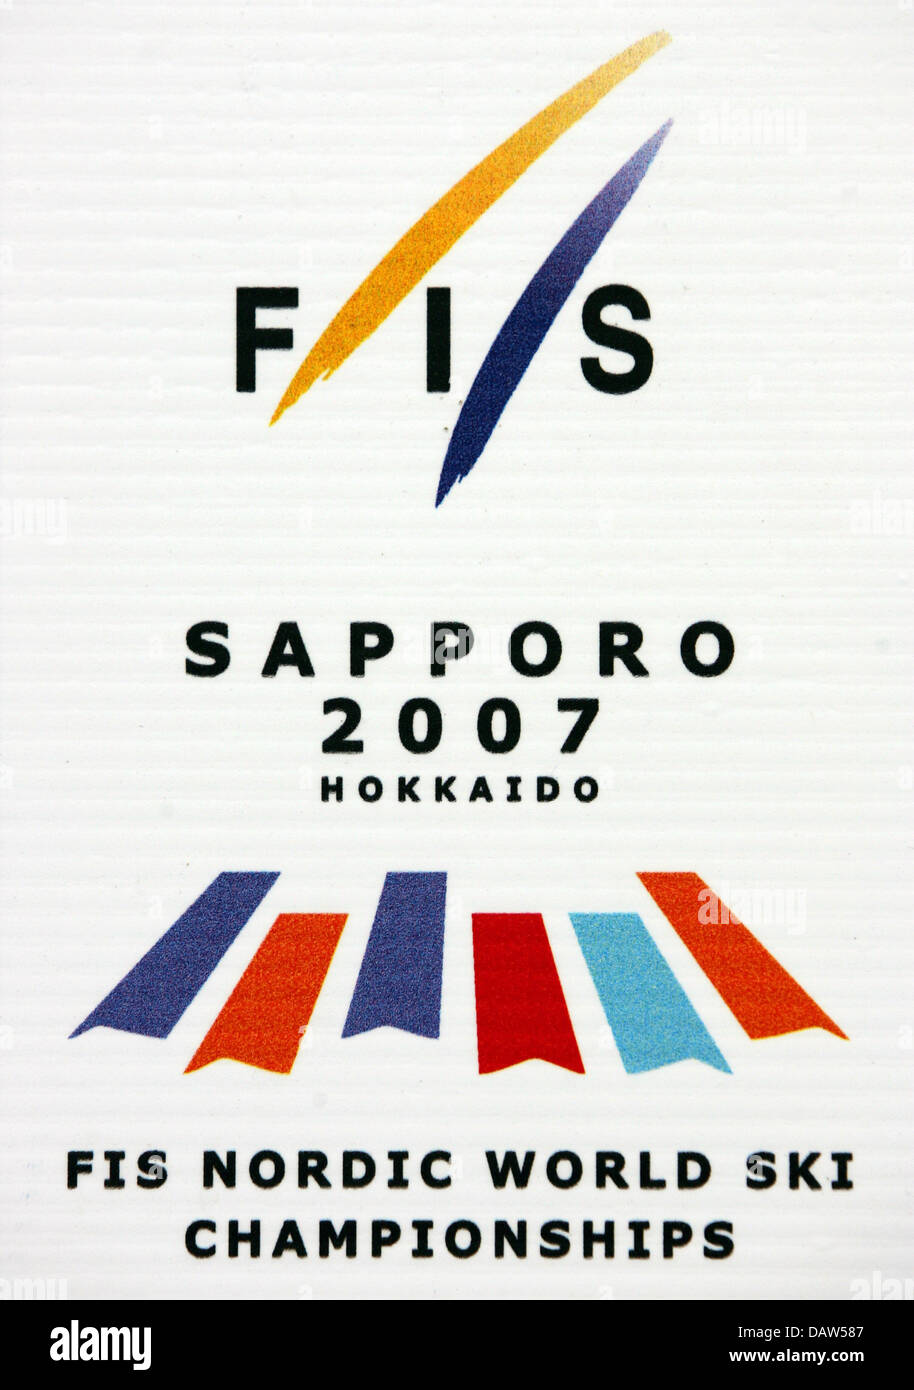 The photo shows the logo of the 'FIS Nordic World Ski Championships 2007' in Sapporo, Japan, Wednesday, - Stock Image